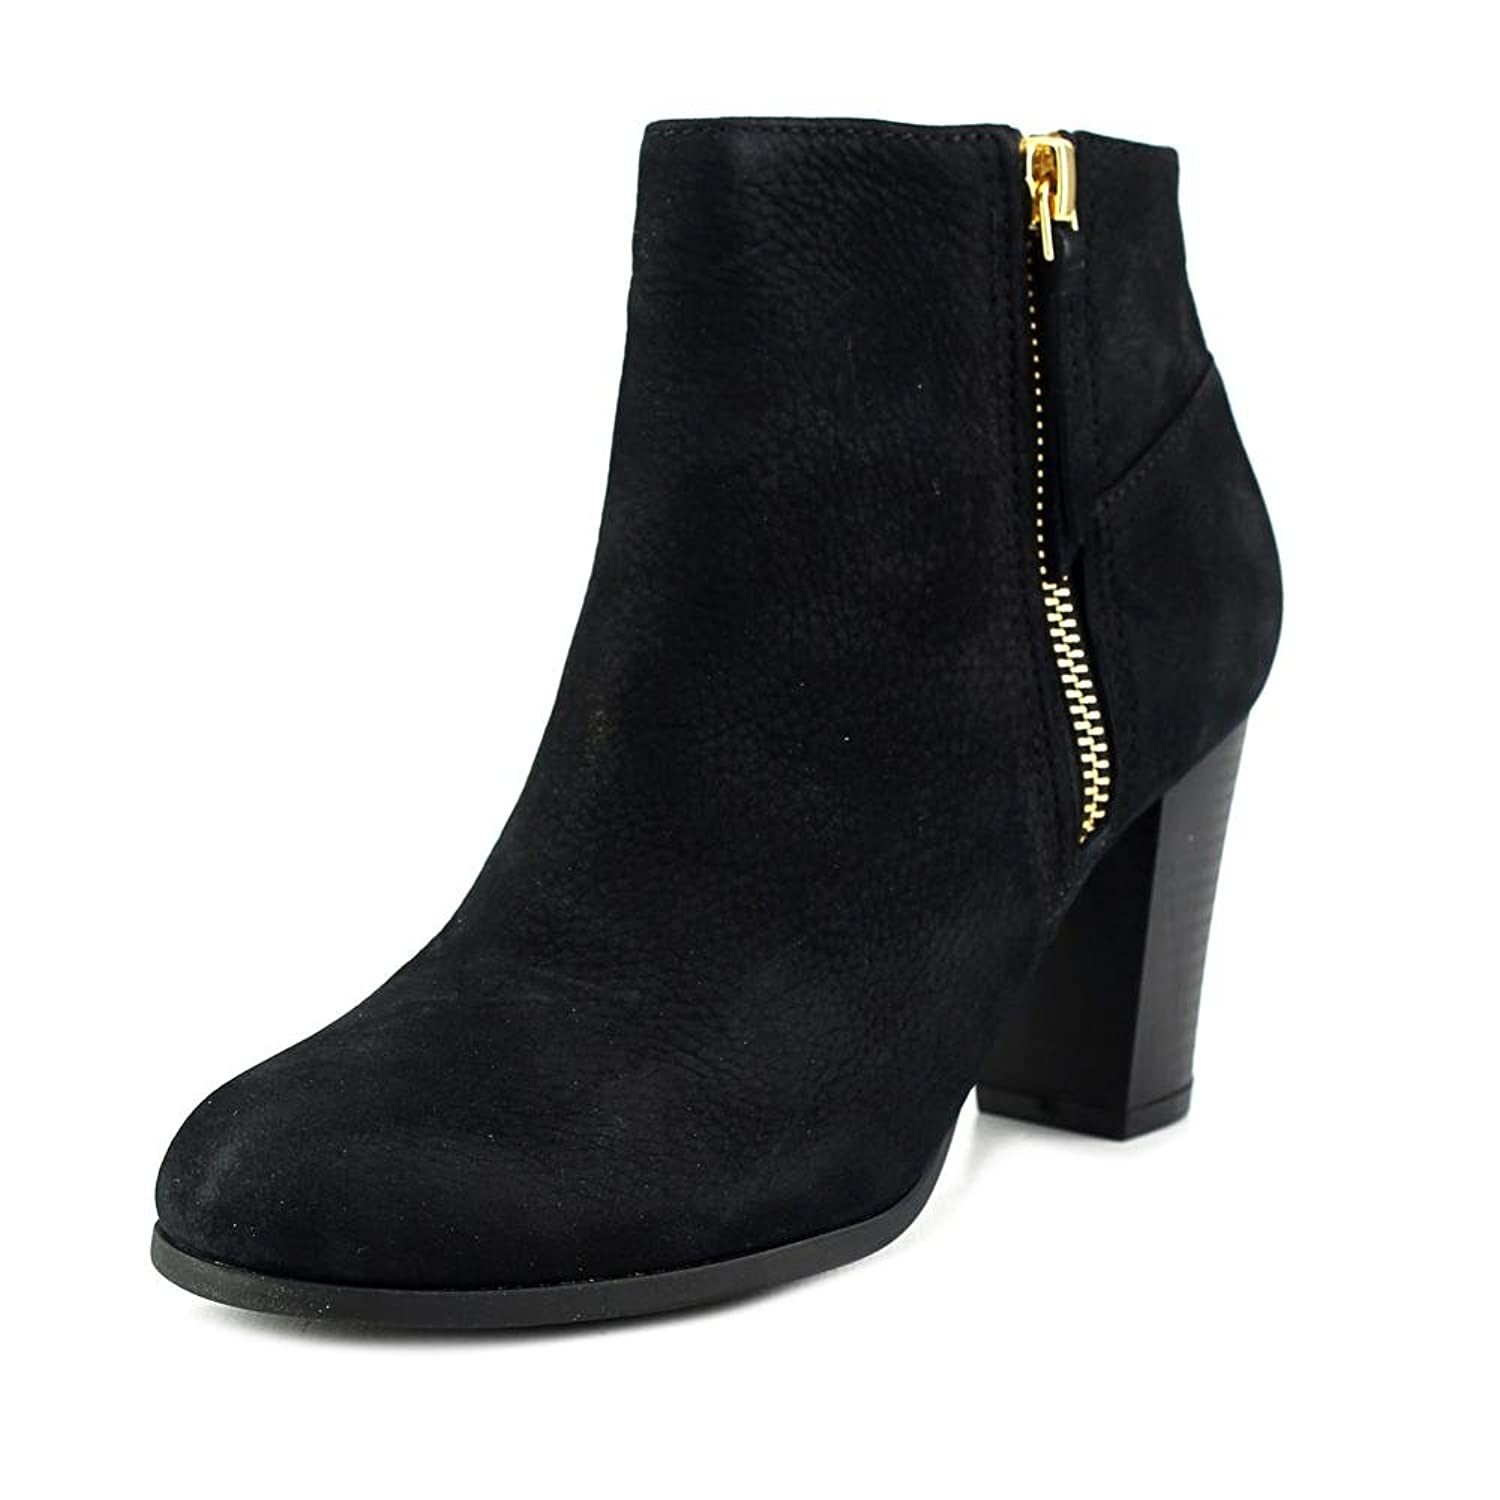 Cole Haan Womens Davenport Closed Toe Ankle Fashion Boots